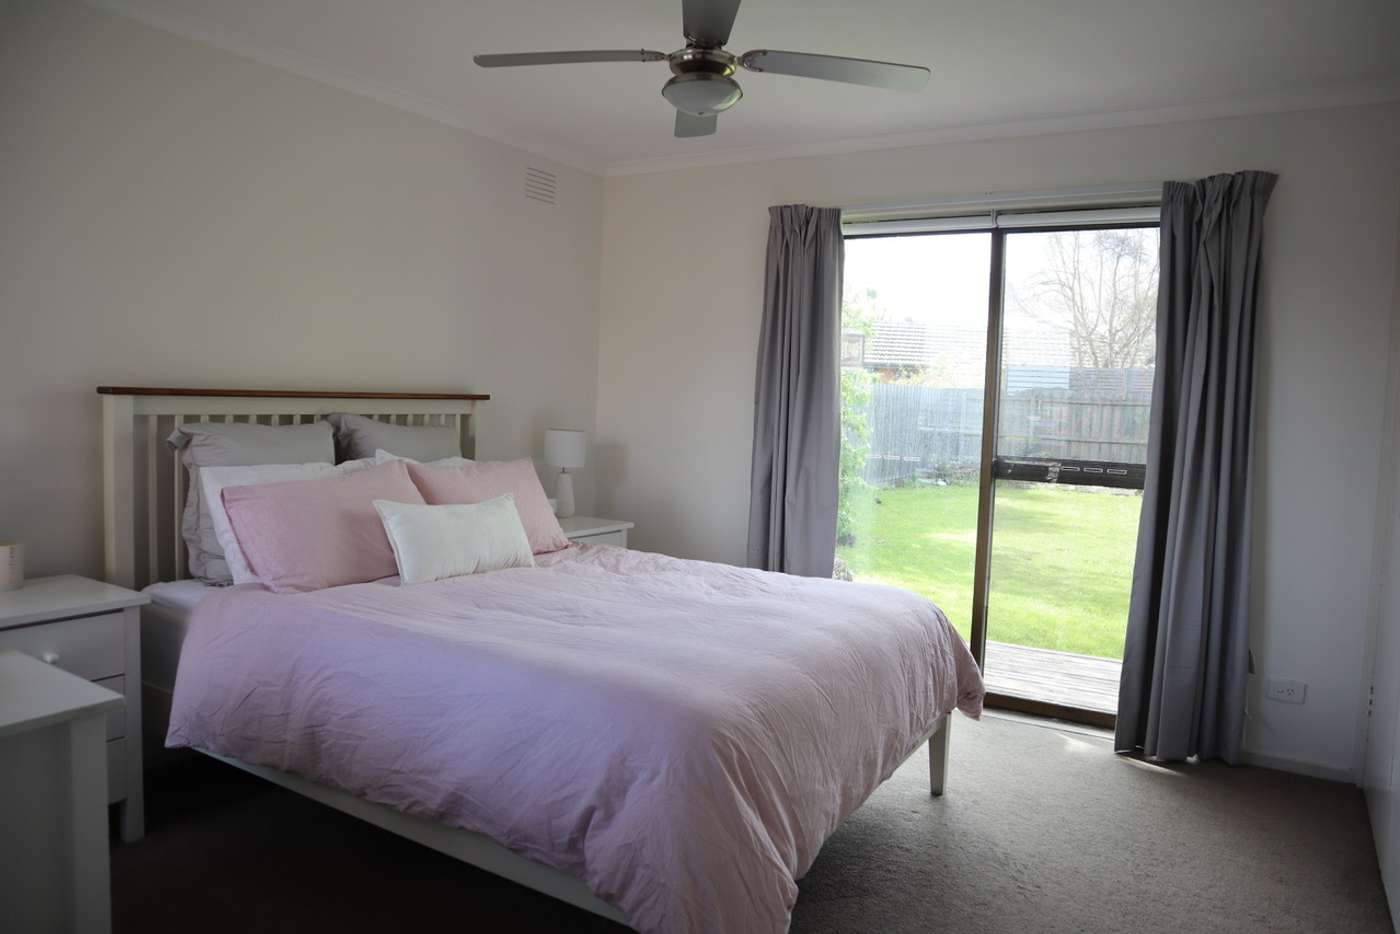 Seventh view of Homely house listing, 60 Baxter-Tooradin Road, Baxter VIC 3911